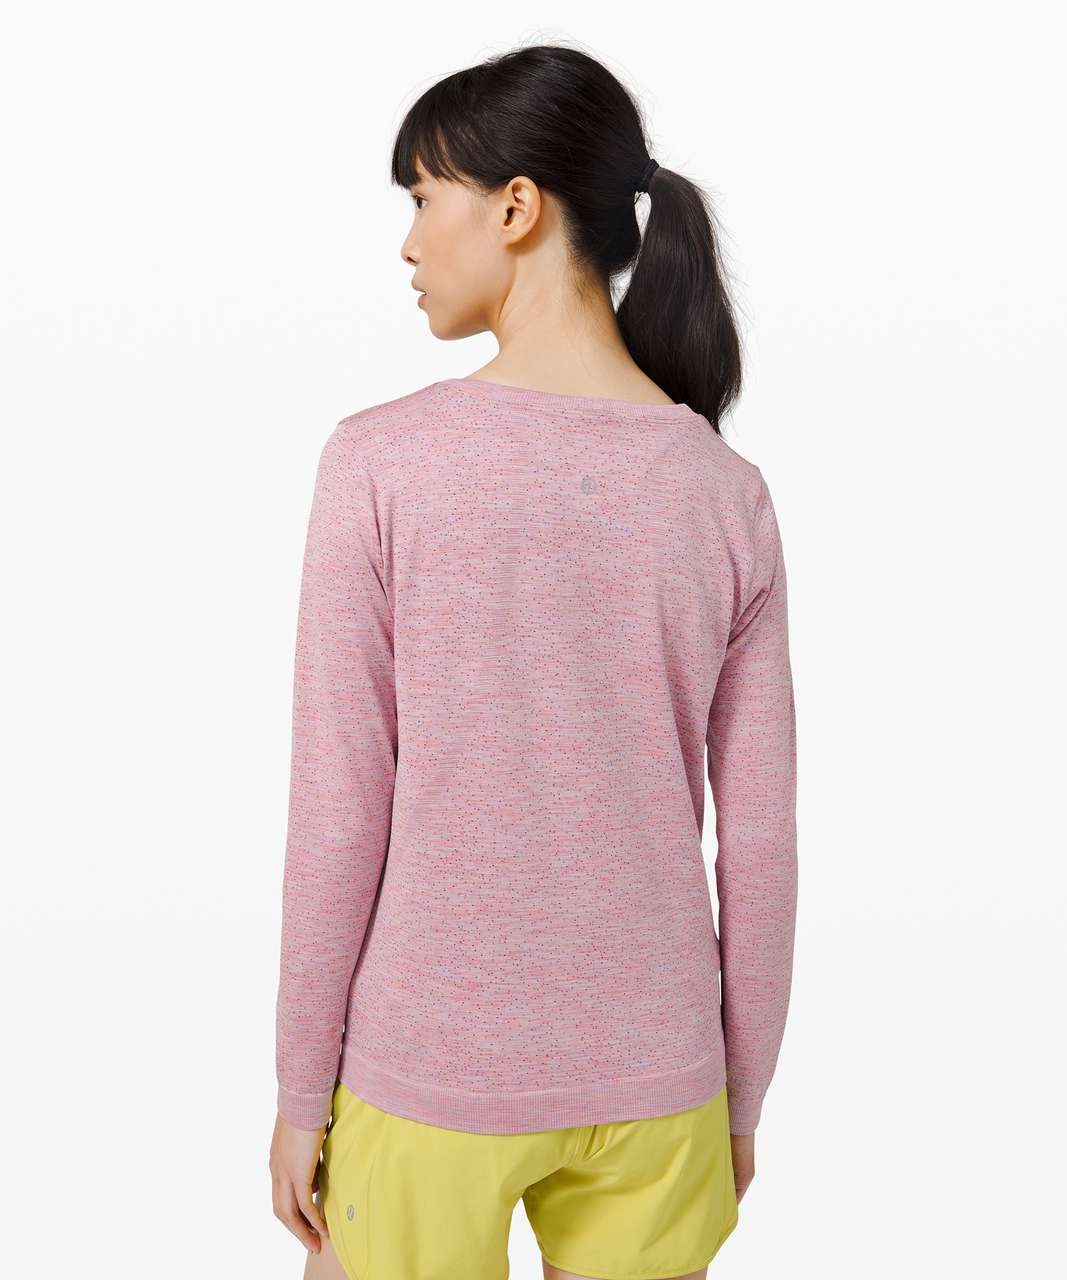 Lululemon Swiftly Relaxed Long Sleeve - Dapple Dot Magenta Glow / Fuchsia Multi